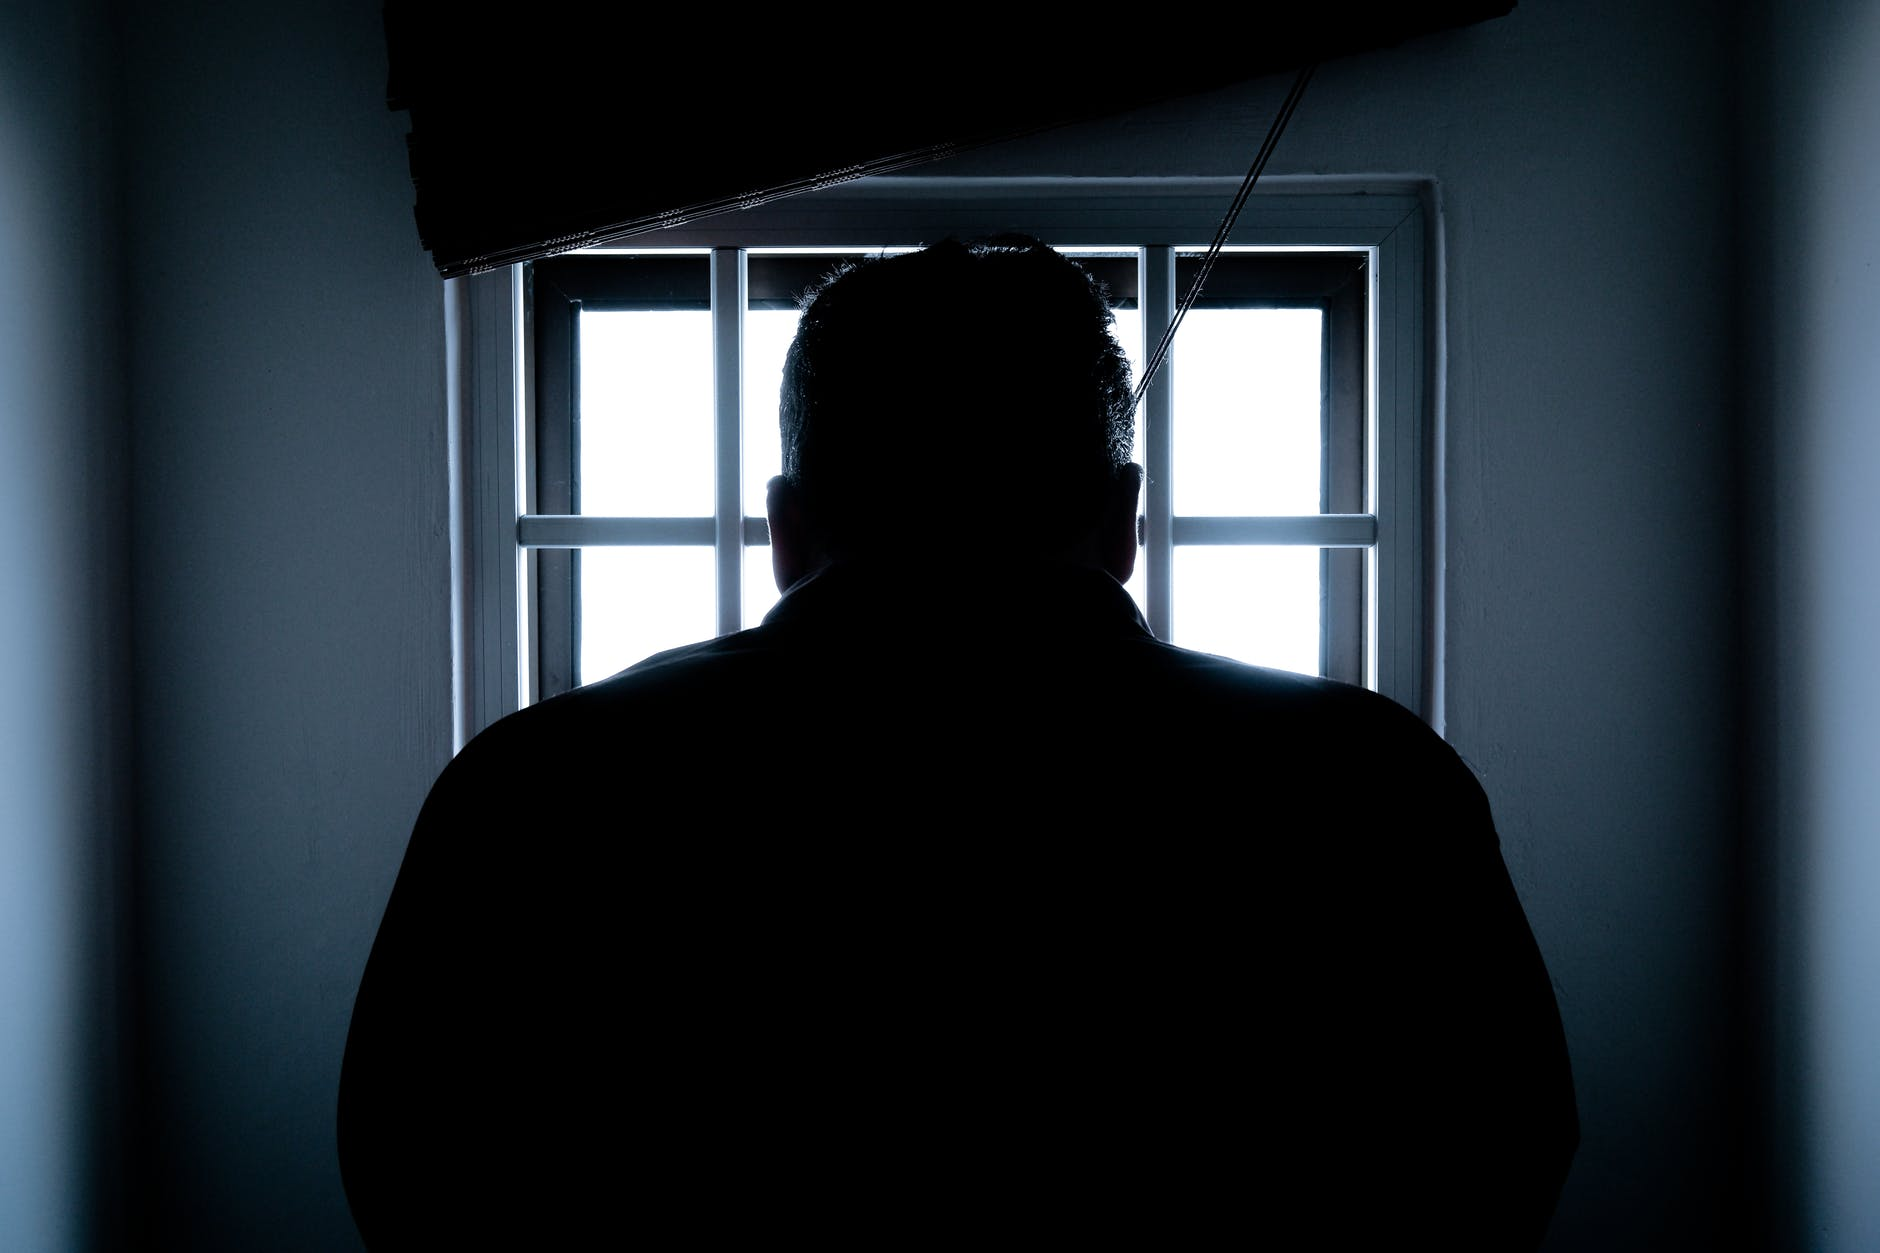 A large man is silhouetted against a barred window, probably a prison cell.